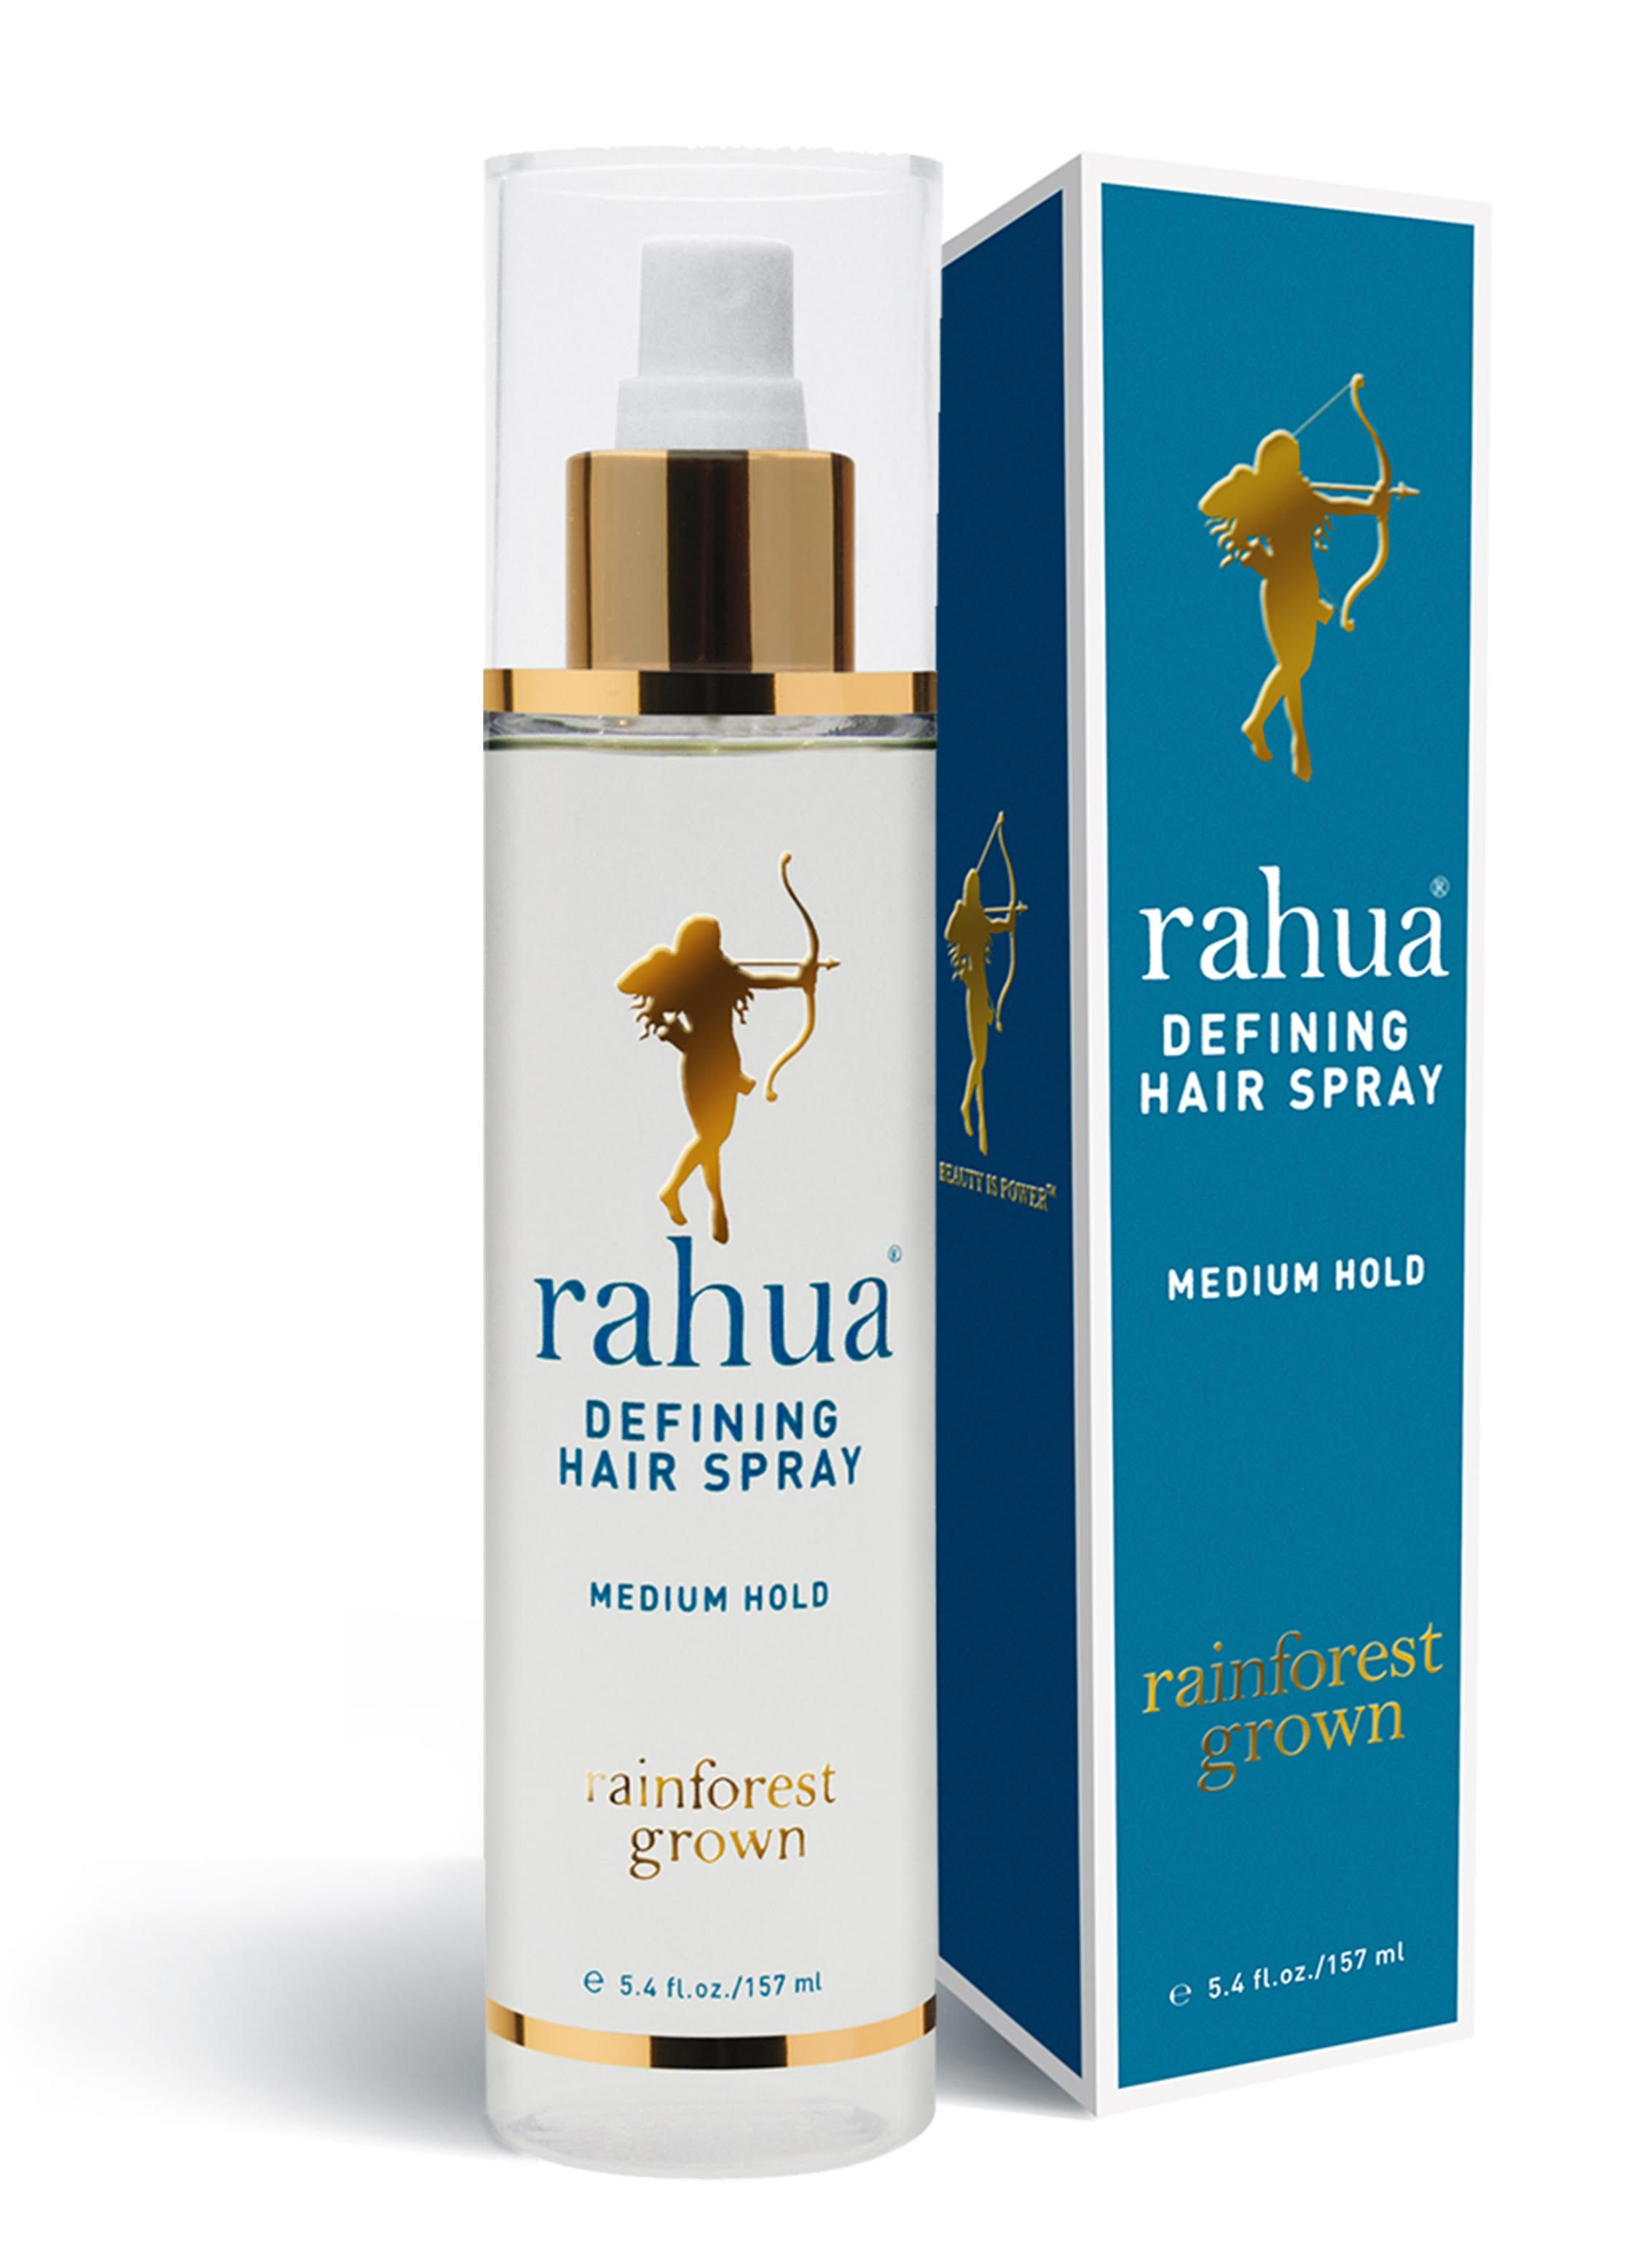 This medium hold, fast drying, non-aerosol Defining Hair Spray is 90% natural – unheard of for a hairspray! Made with organic ingredients, Rahua Defining Hair Spray creates definition, hold and lasting, touchable style. This brushable hair spray allows for re-styling throughout the day, but the hold is strong enough to use with any type of styling device, from high-tech to low-tech. Rahua's Defining Hair Spray helps mitigate UV rays, and is color safe, vegan and gluten free.